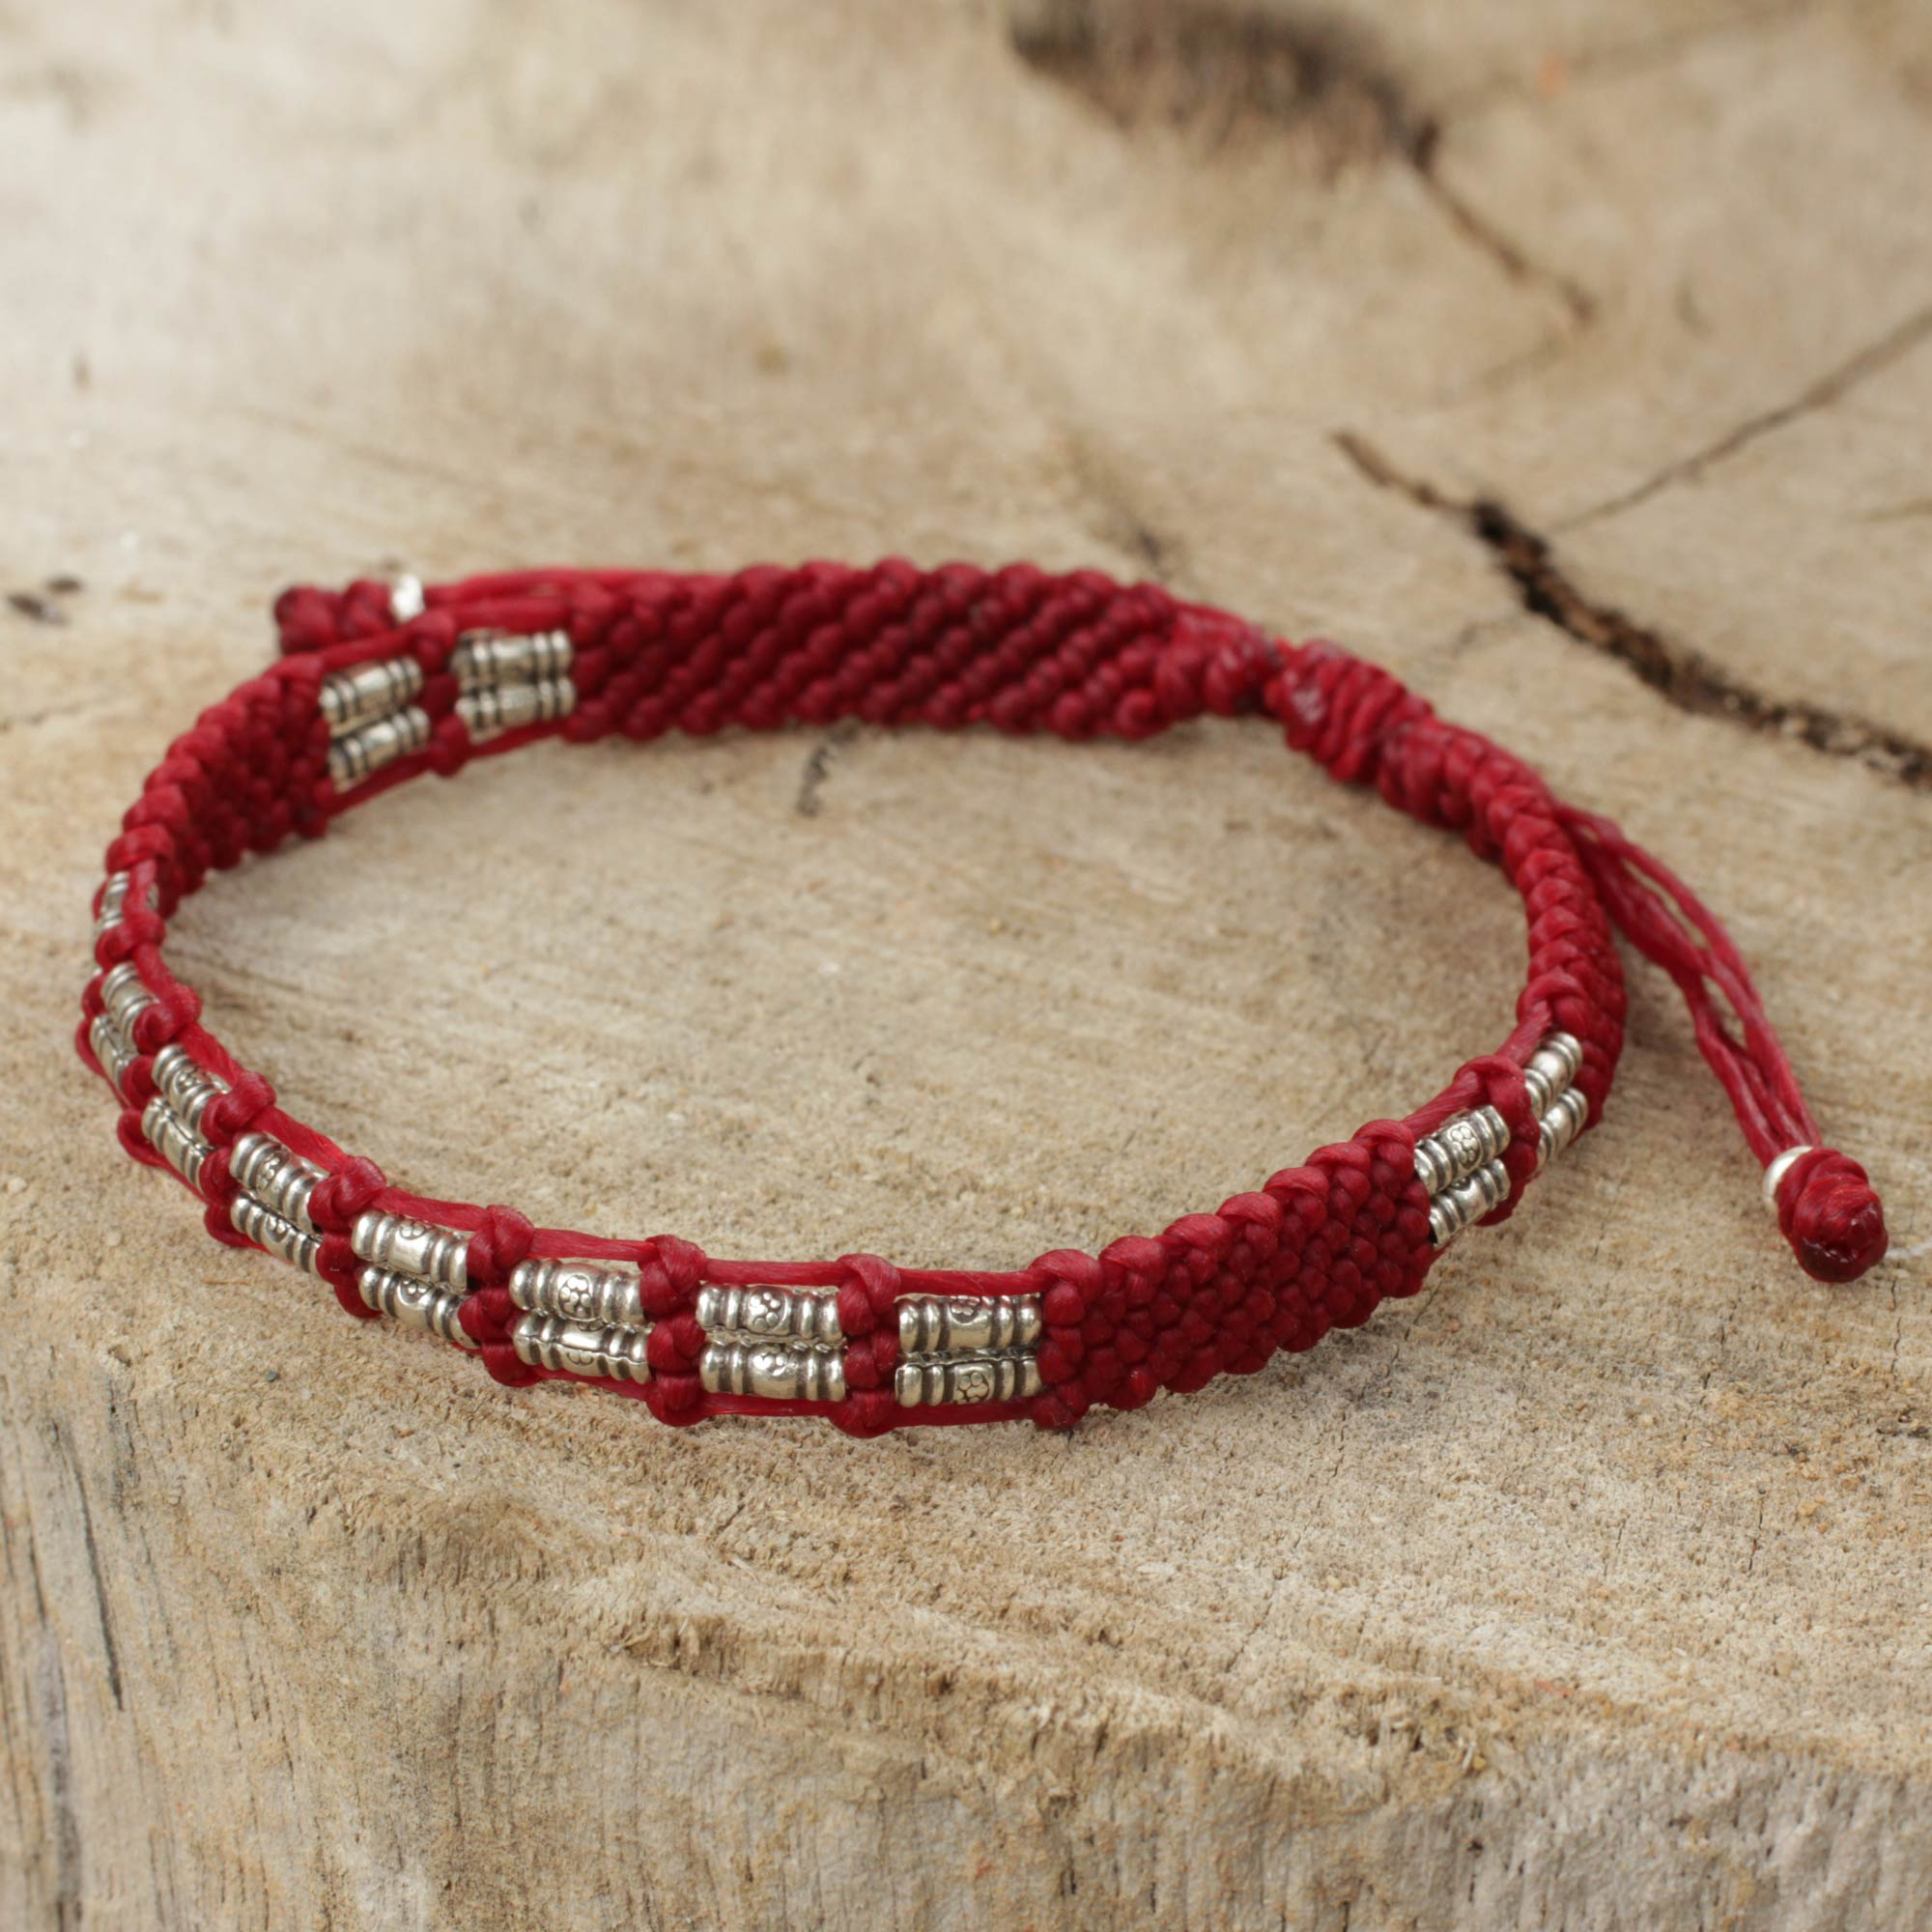 Thai Braided Red Cord Bracelet With 950 Silver Beads Affinity In